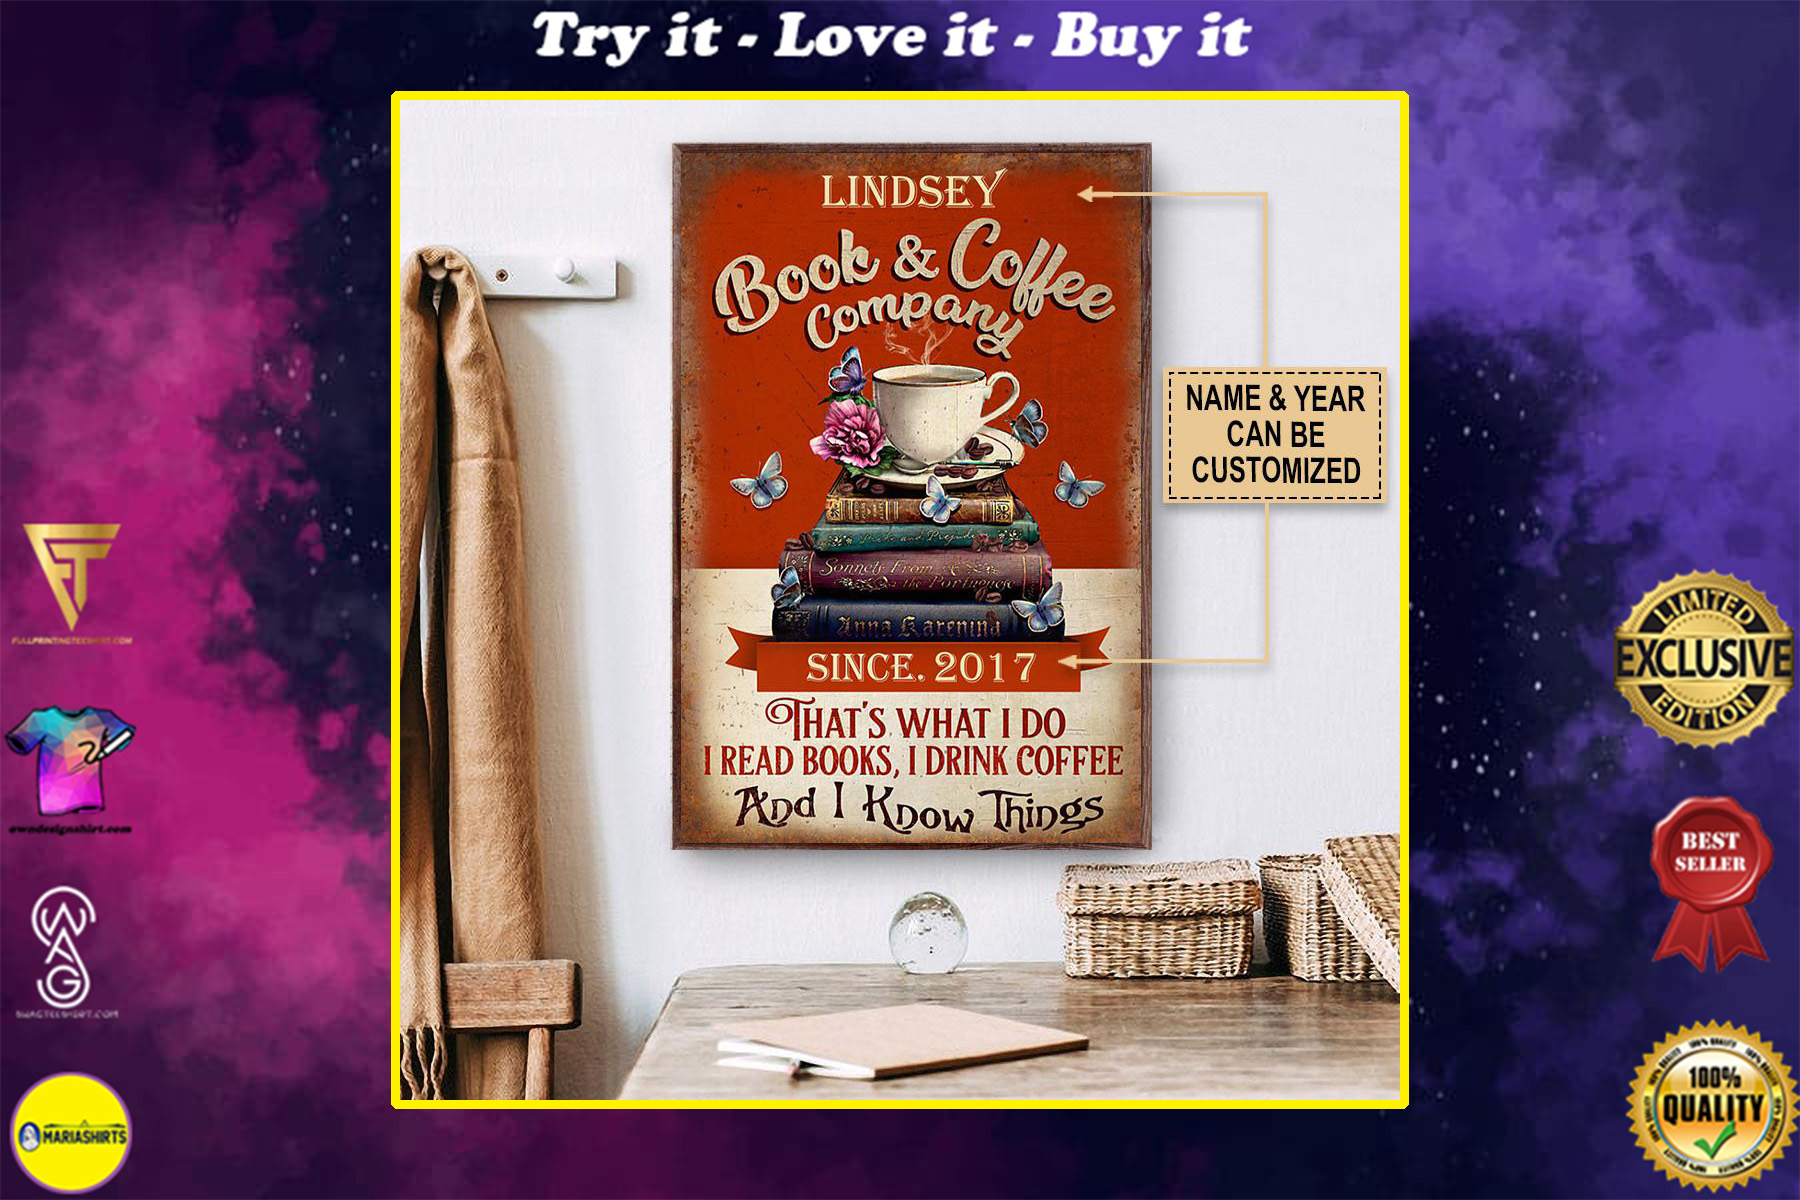 custom your name book and coffee company thats what i do i read books i drink coffee and i know things poster